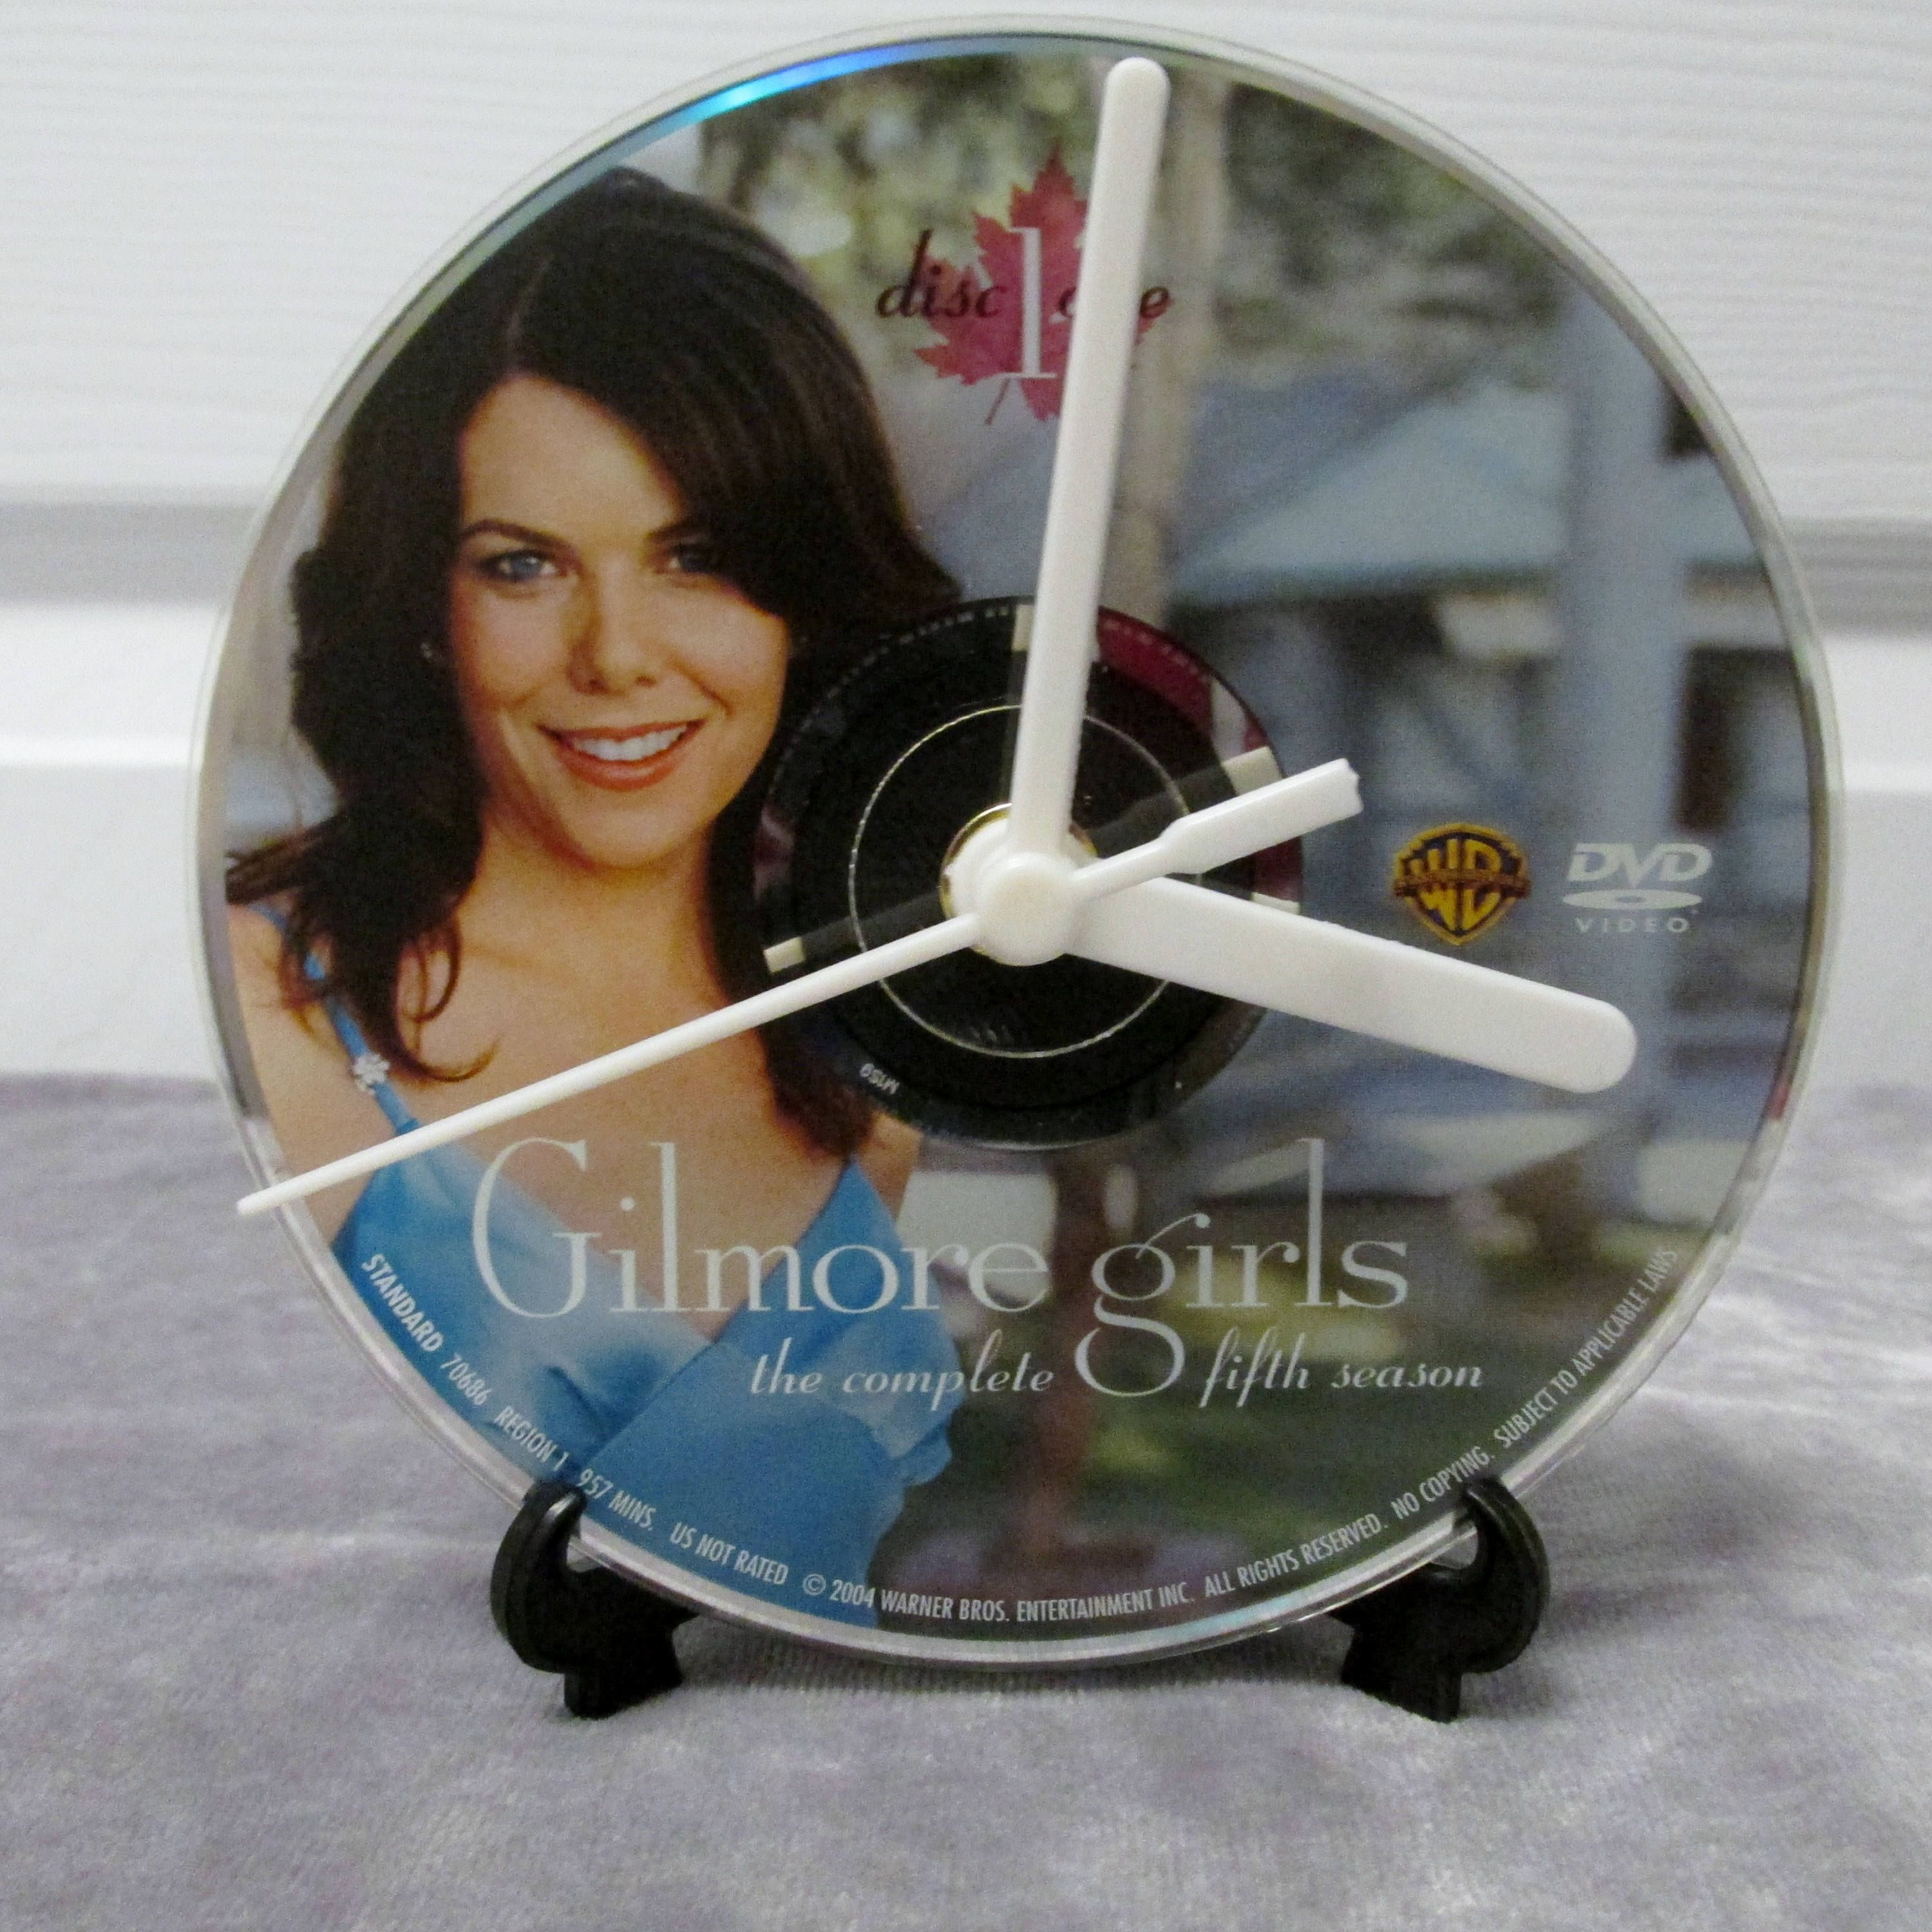 Gilmore Girls DVD Clock Upcycled TV Show #1 - Lorelai by DarkStormTV on Etsy